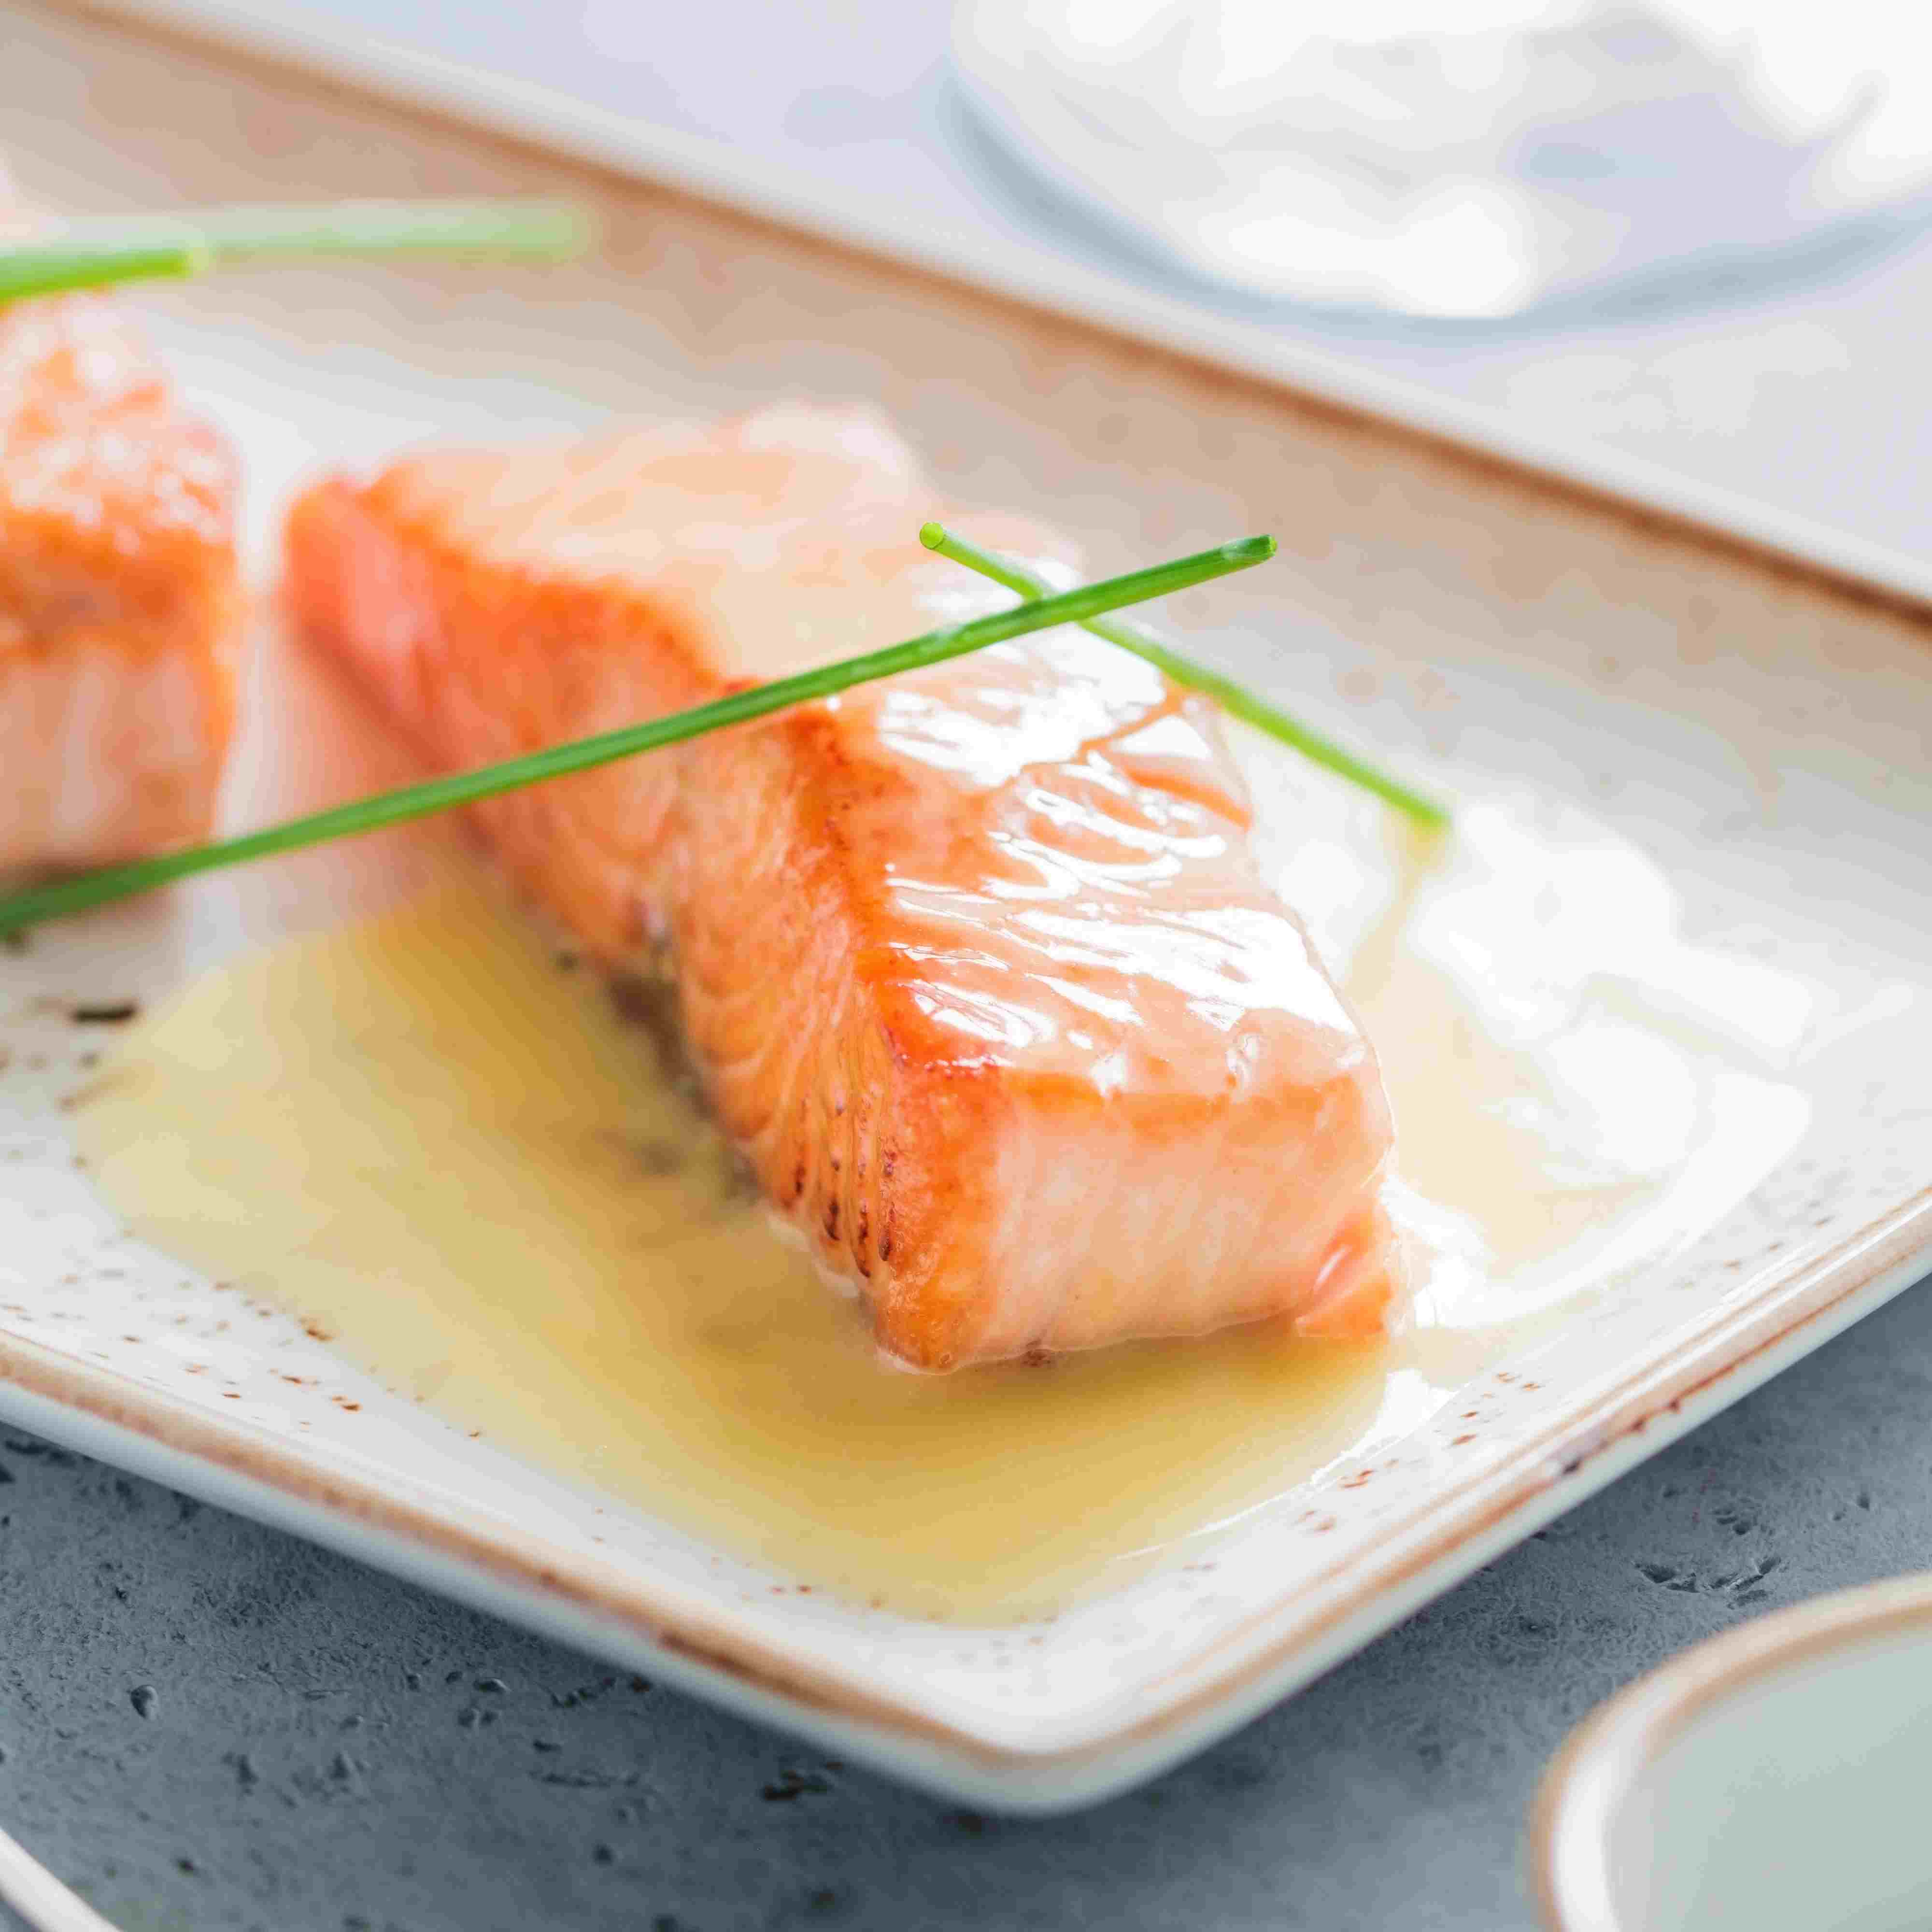 Beurre blanc sauce served atop cooked salmon